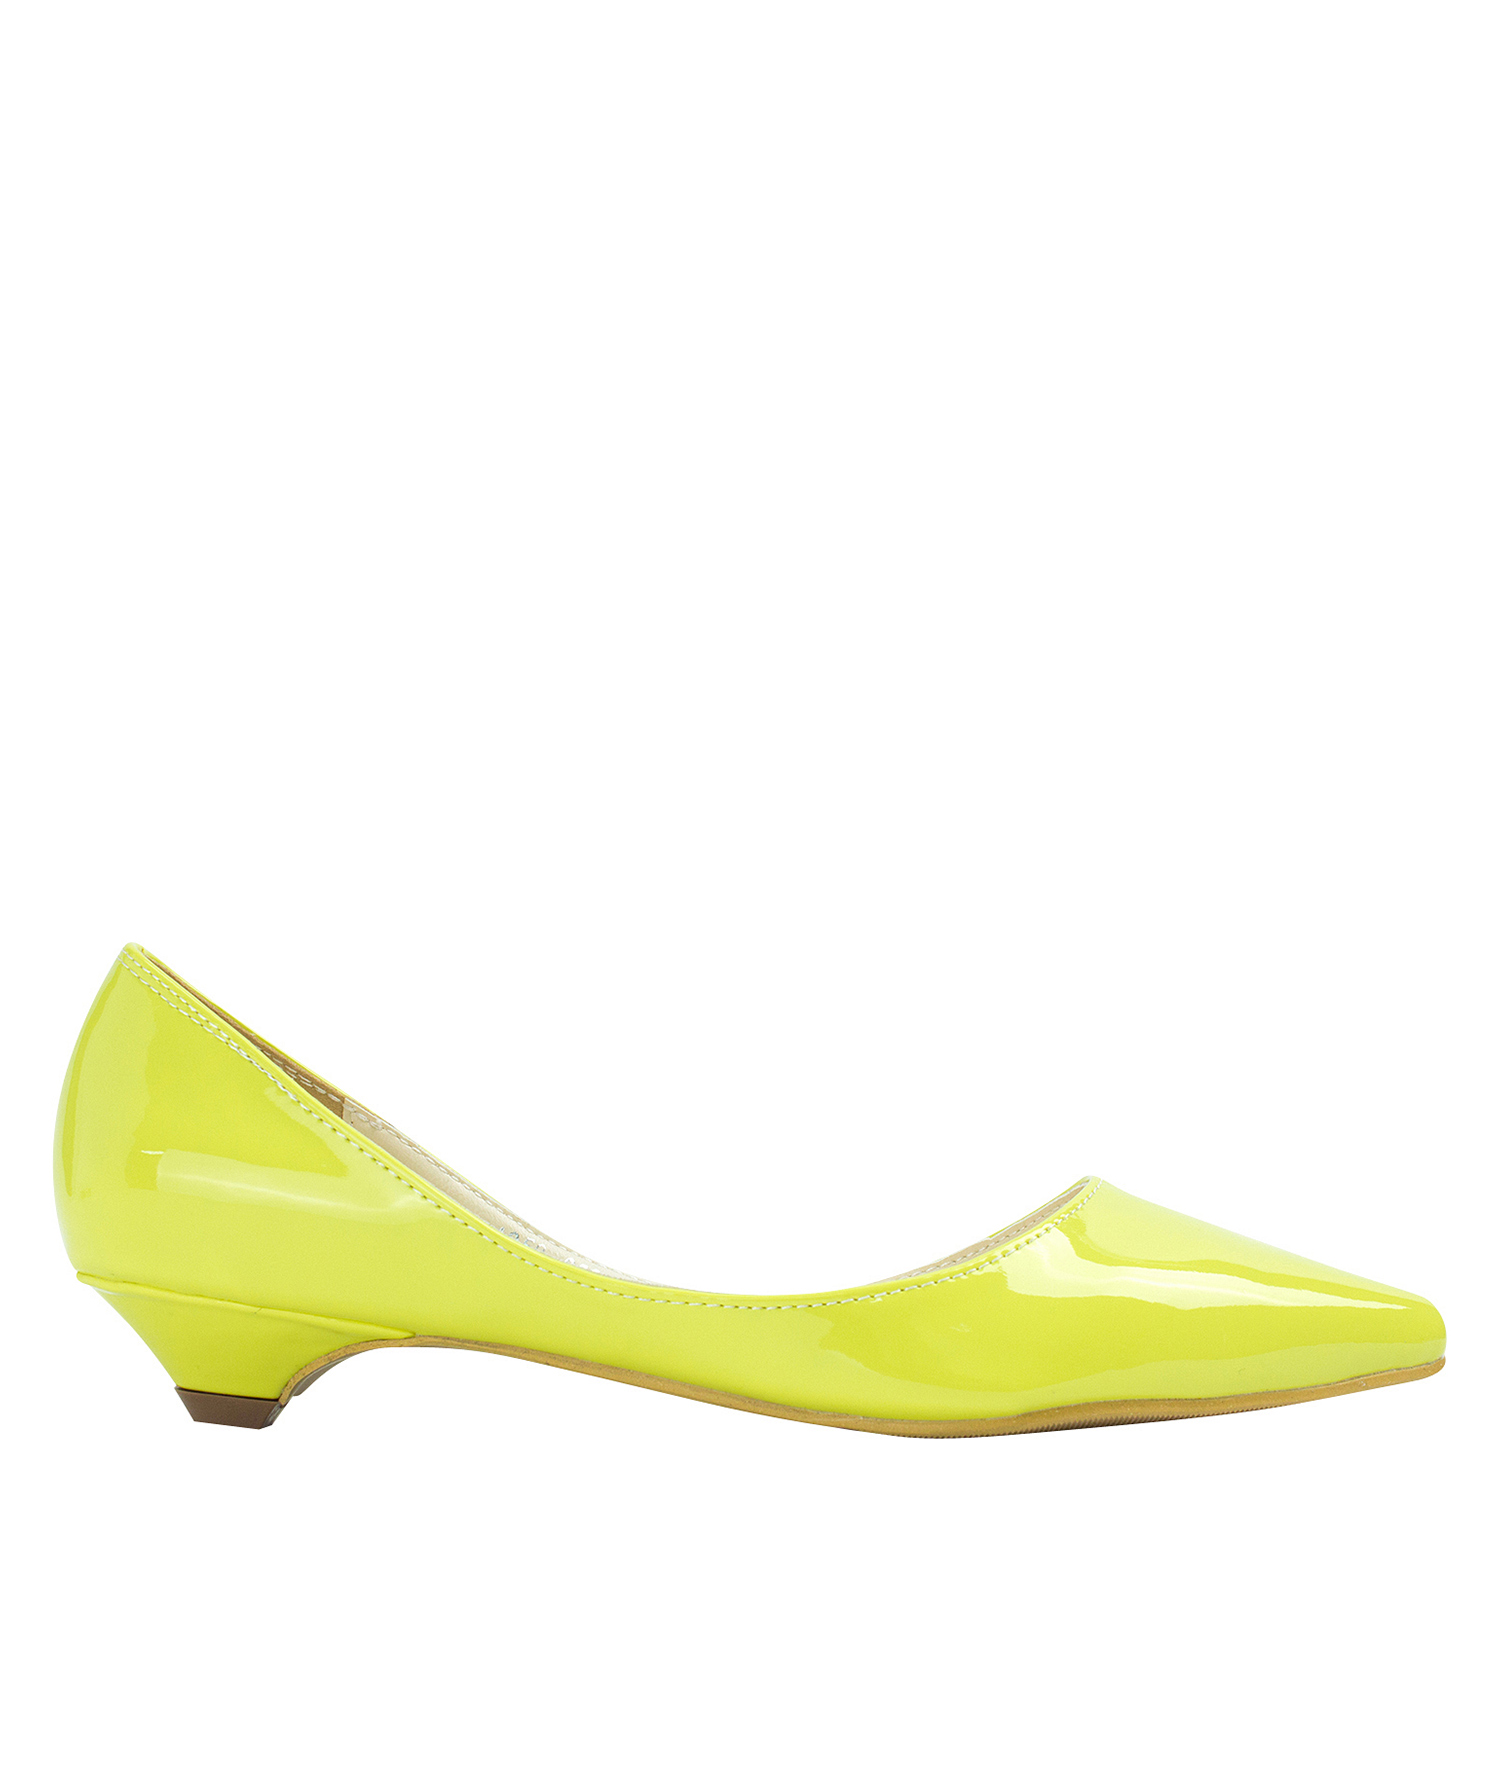 Low Yellow Heels